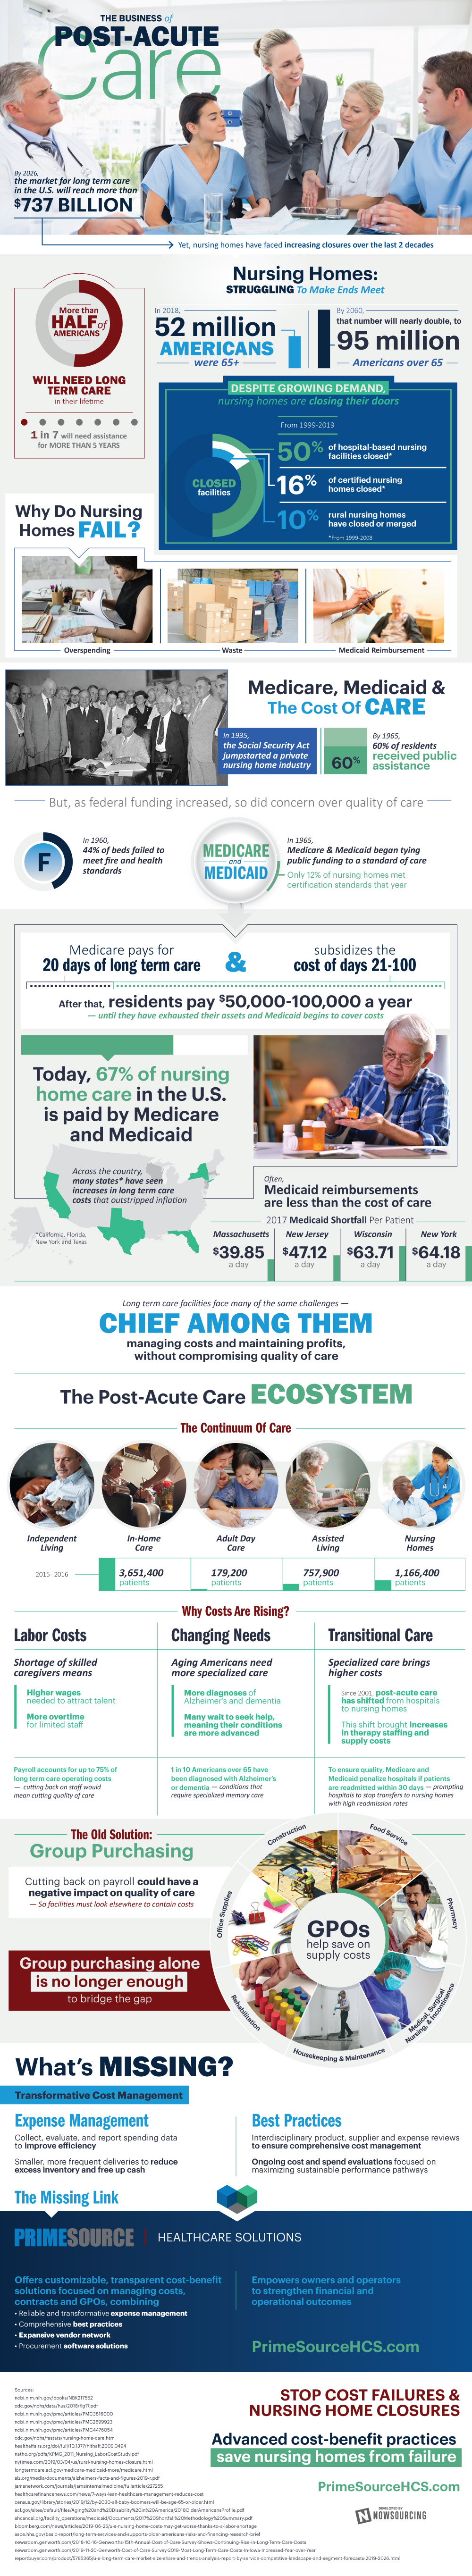 Cutting Costs of Post-Acute Care - Infographic